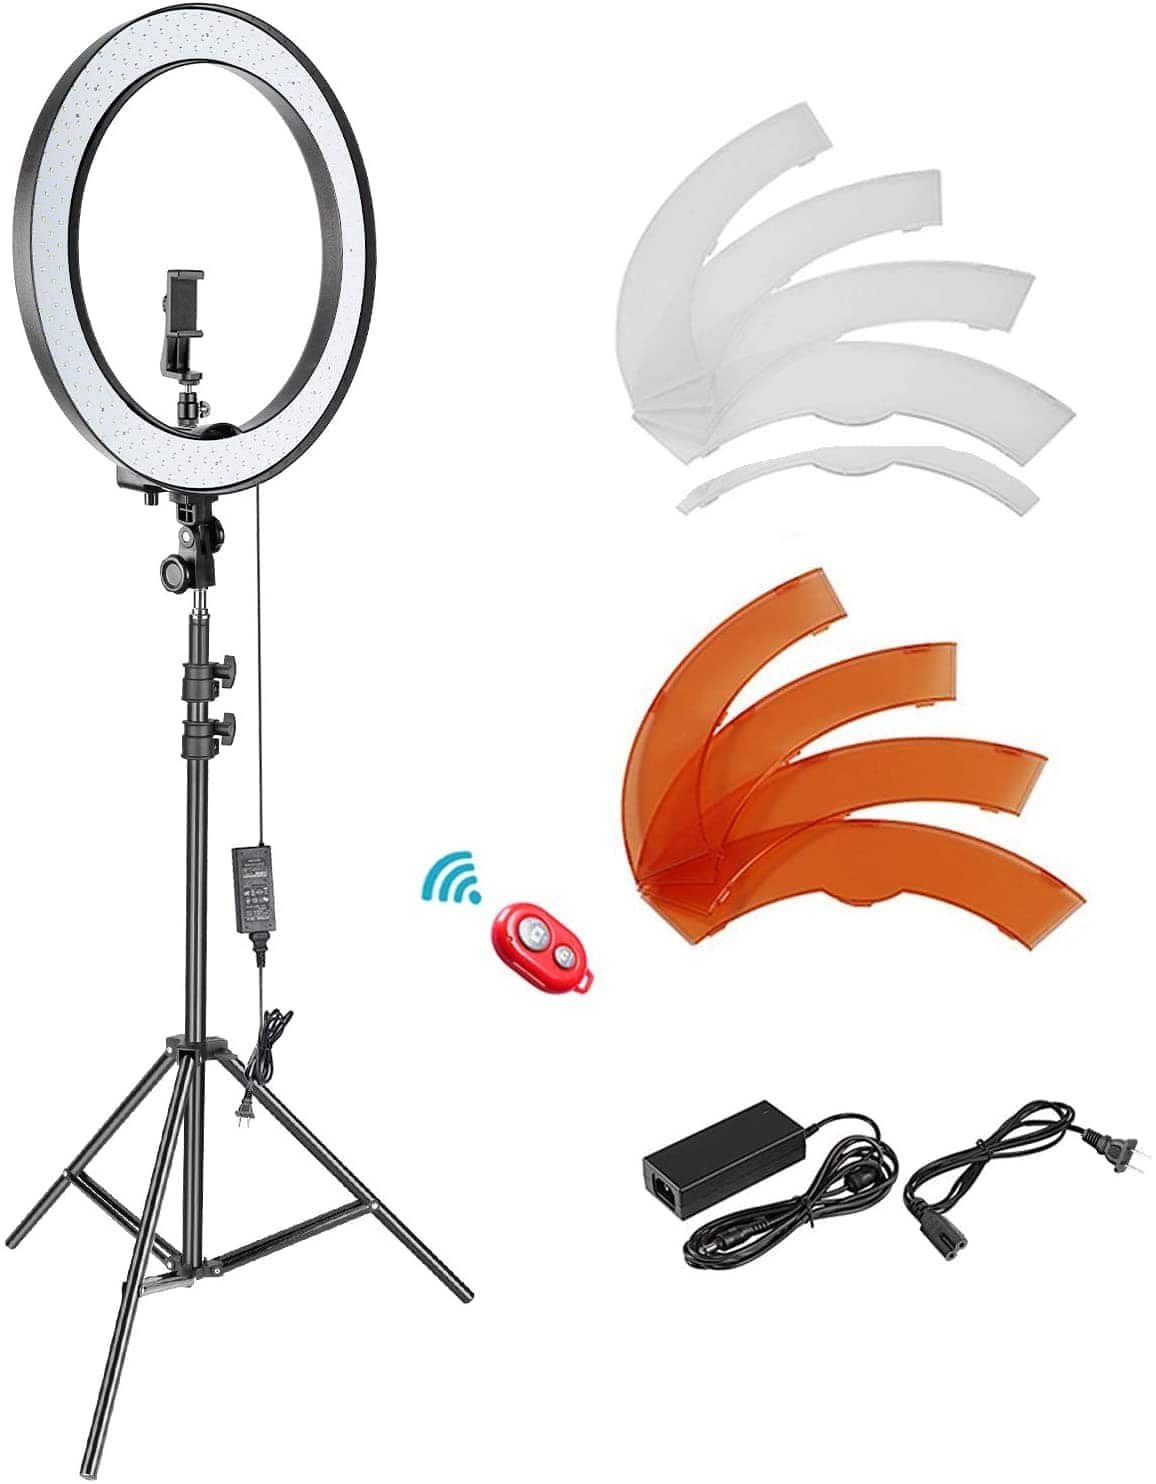 Neewer 18-inch SMD LED Ring Light Kit - $54.99 + Free Shipping